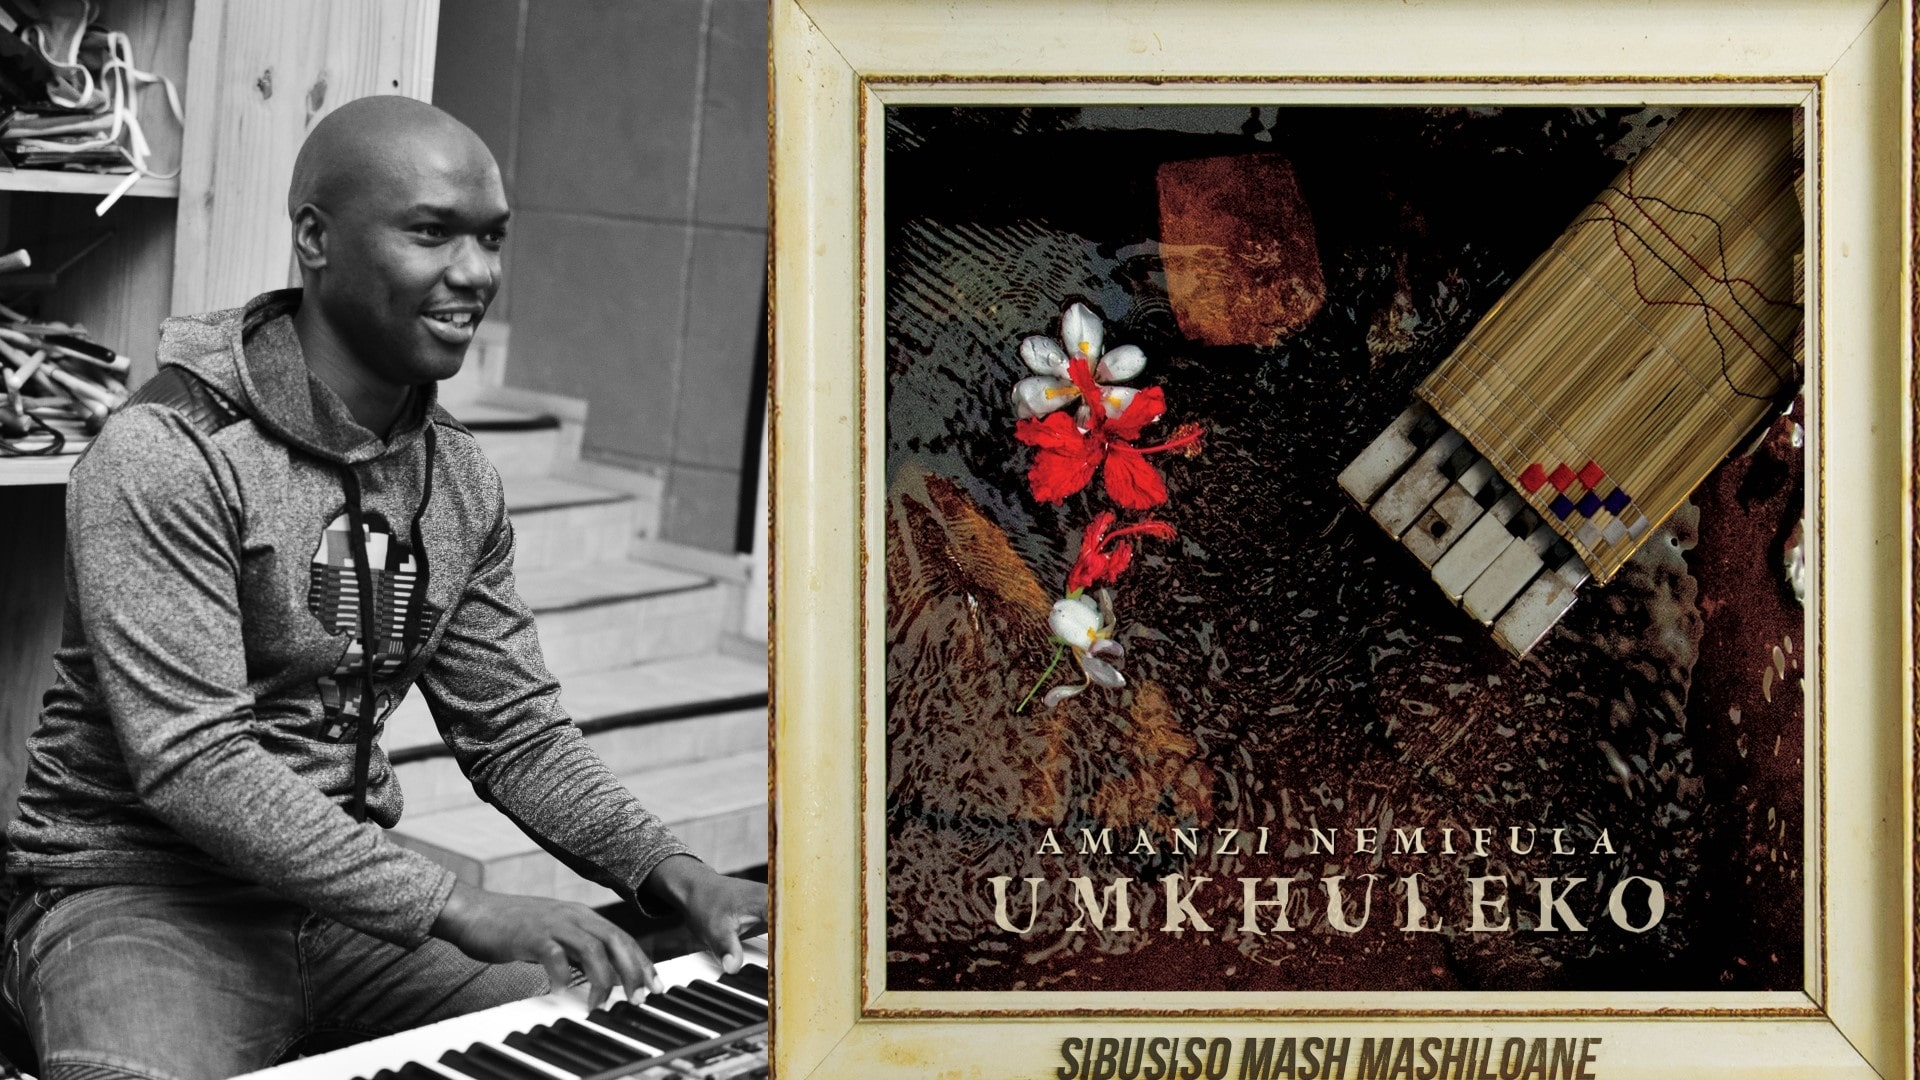 z lecturer Mr Sibusiso Mashiloane and his new album.